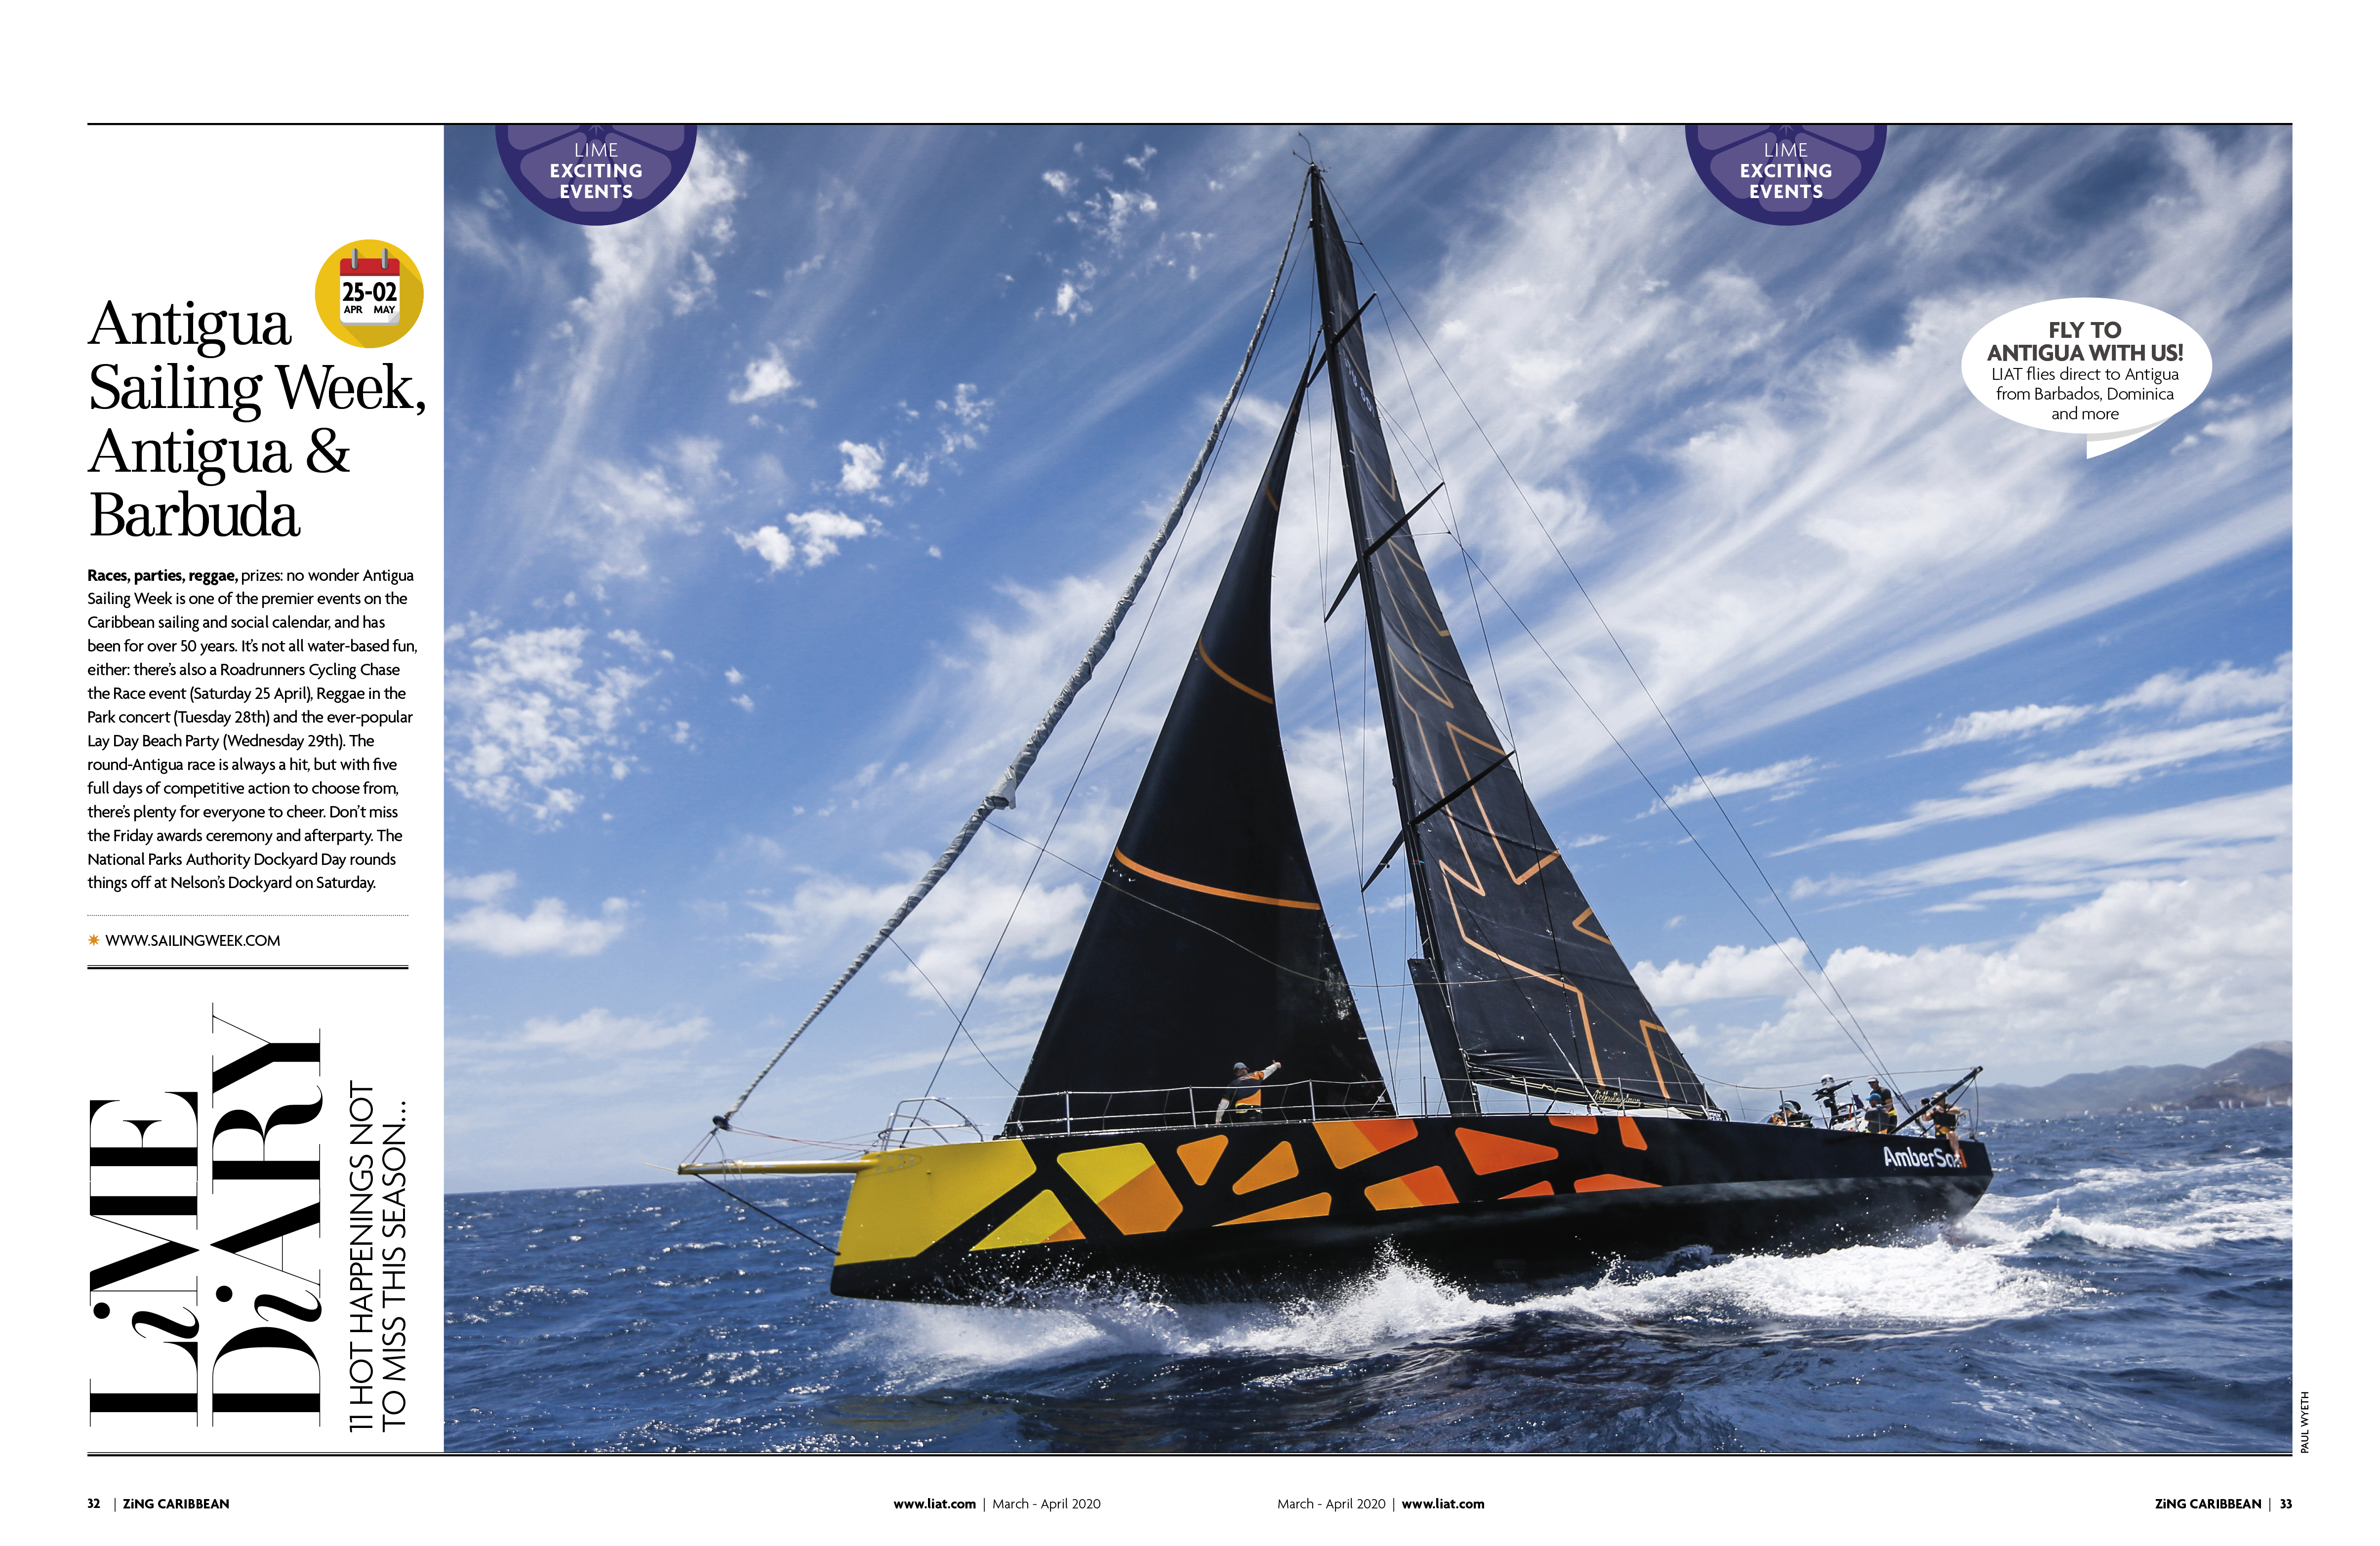 LIAT AIRLINES: ZING OPENING SPREAD